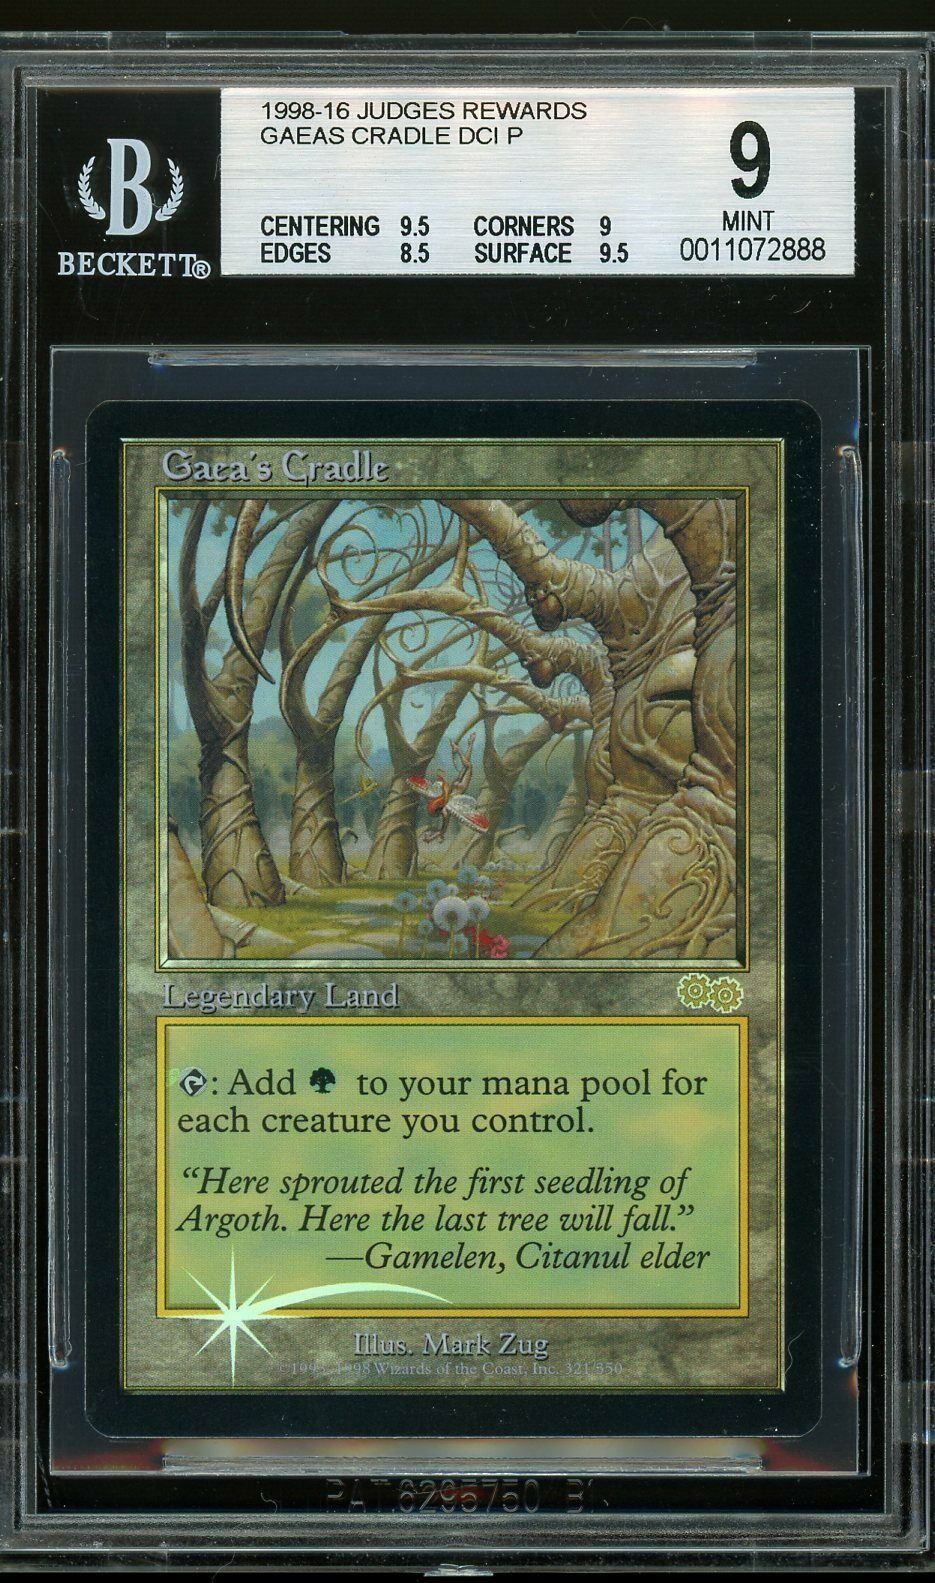 Gaea's Cradle Cradle Cradle - DCI Judge foil, BGS 9 MINT. MTG (pop 1 of 11) 014cc6